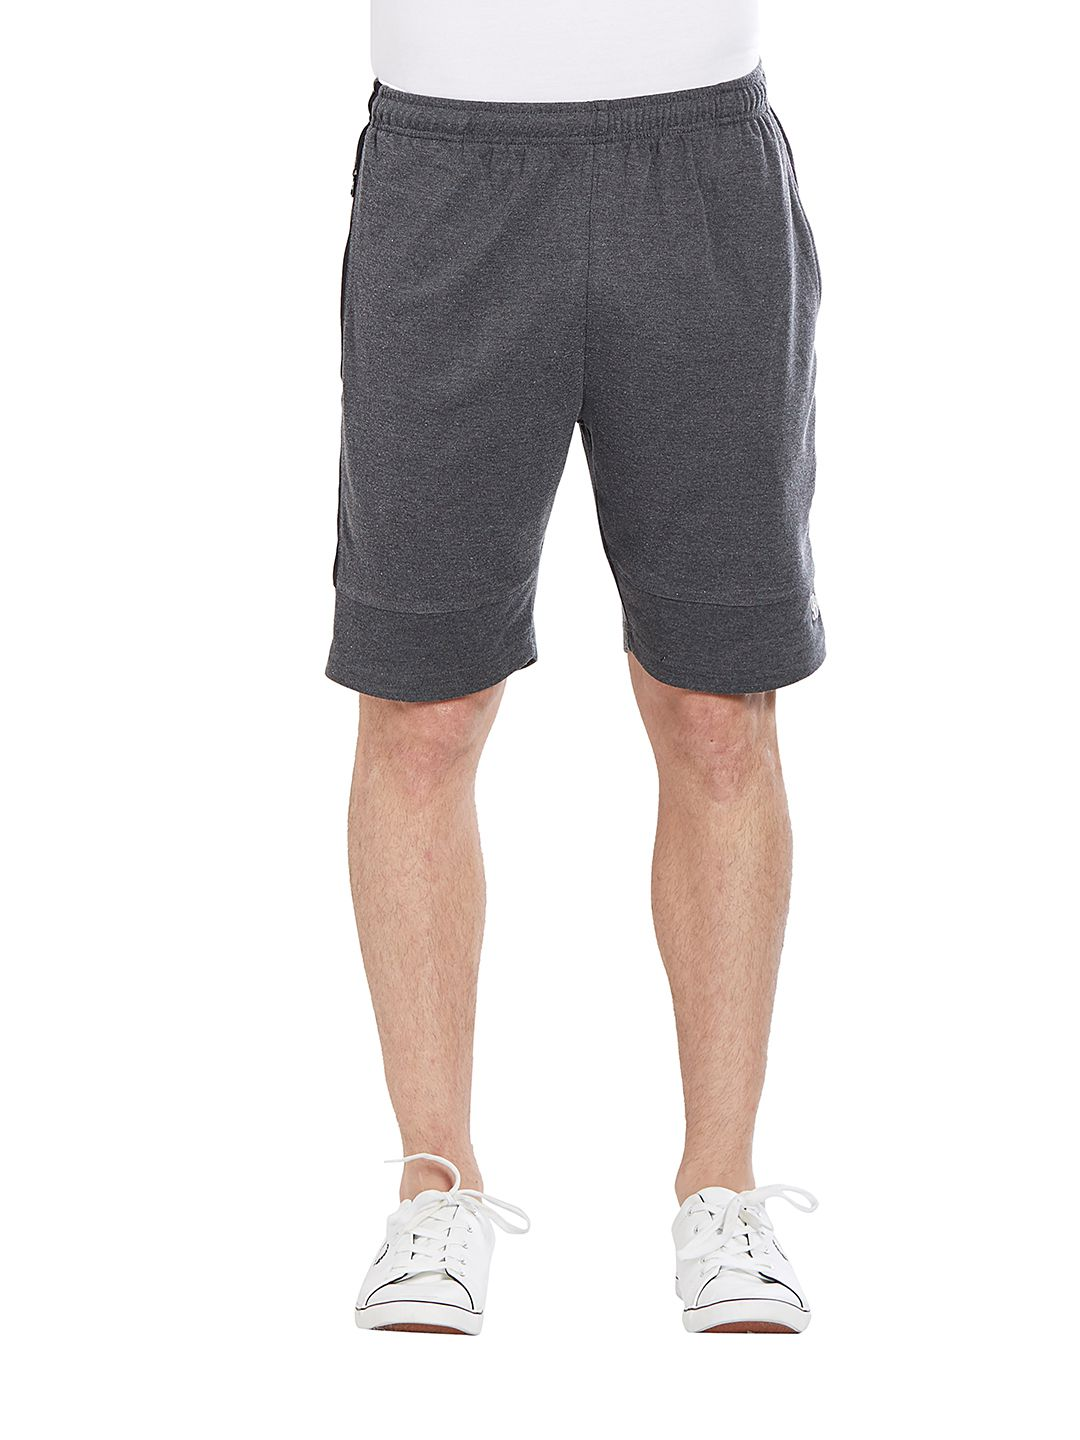 BONATY Dark Grey Blended Cotton Solid  Shorts For Men